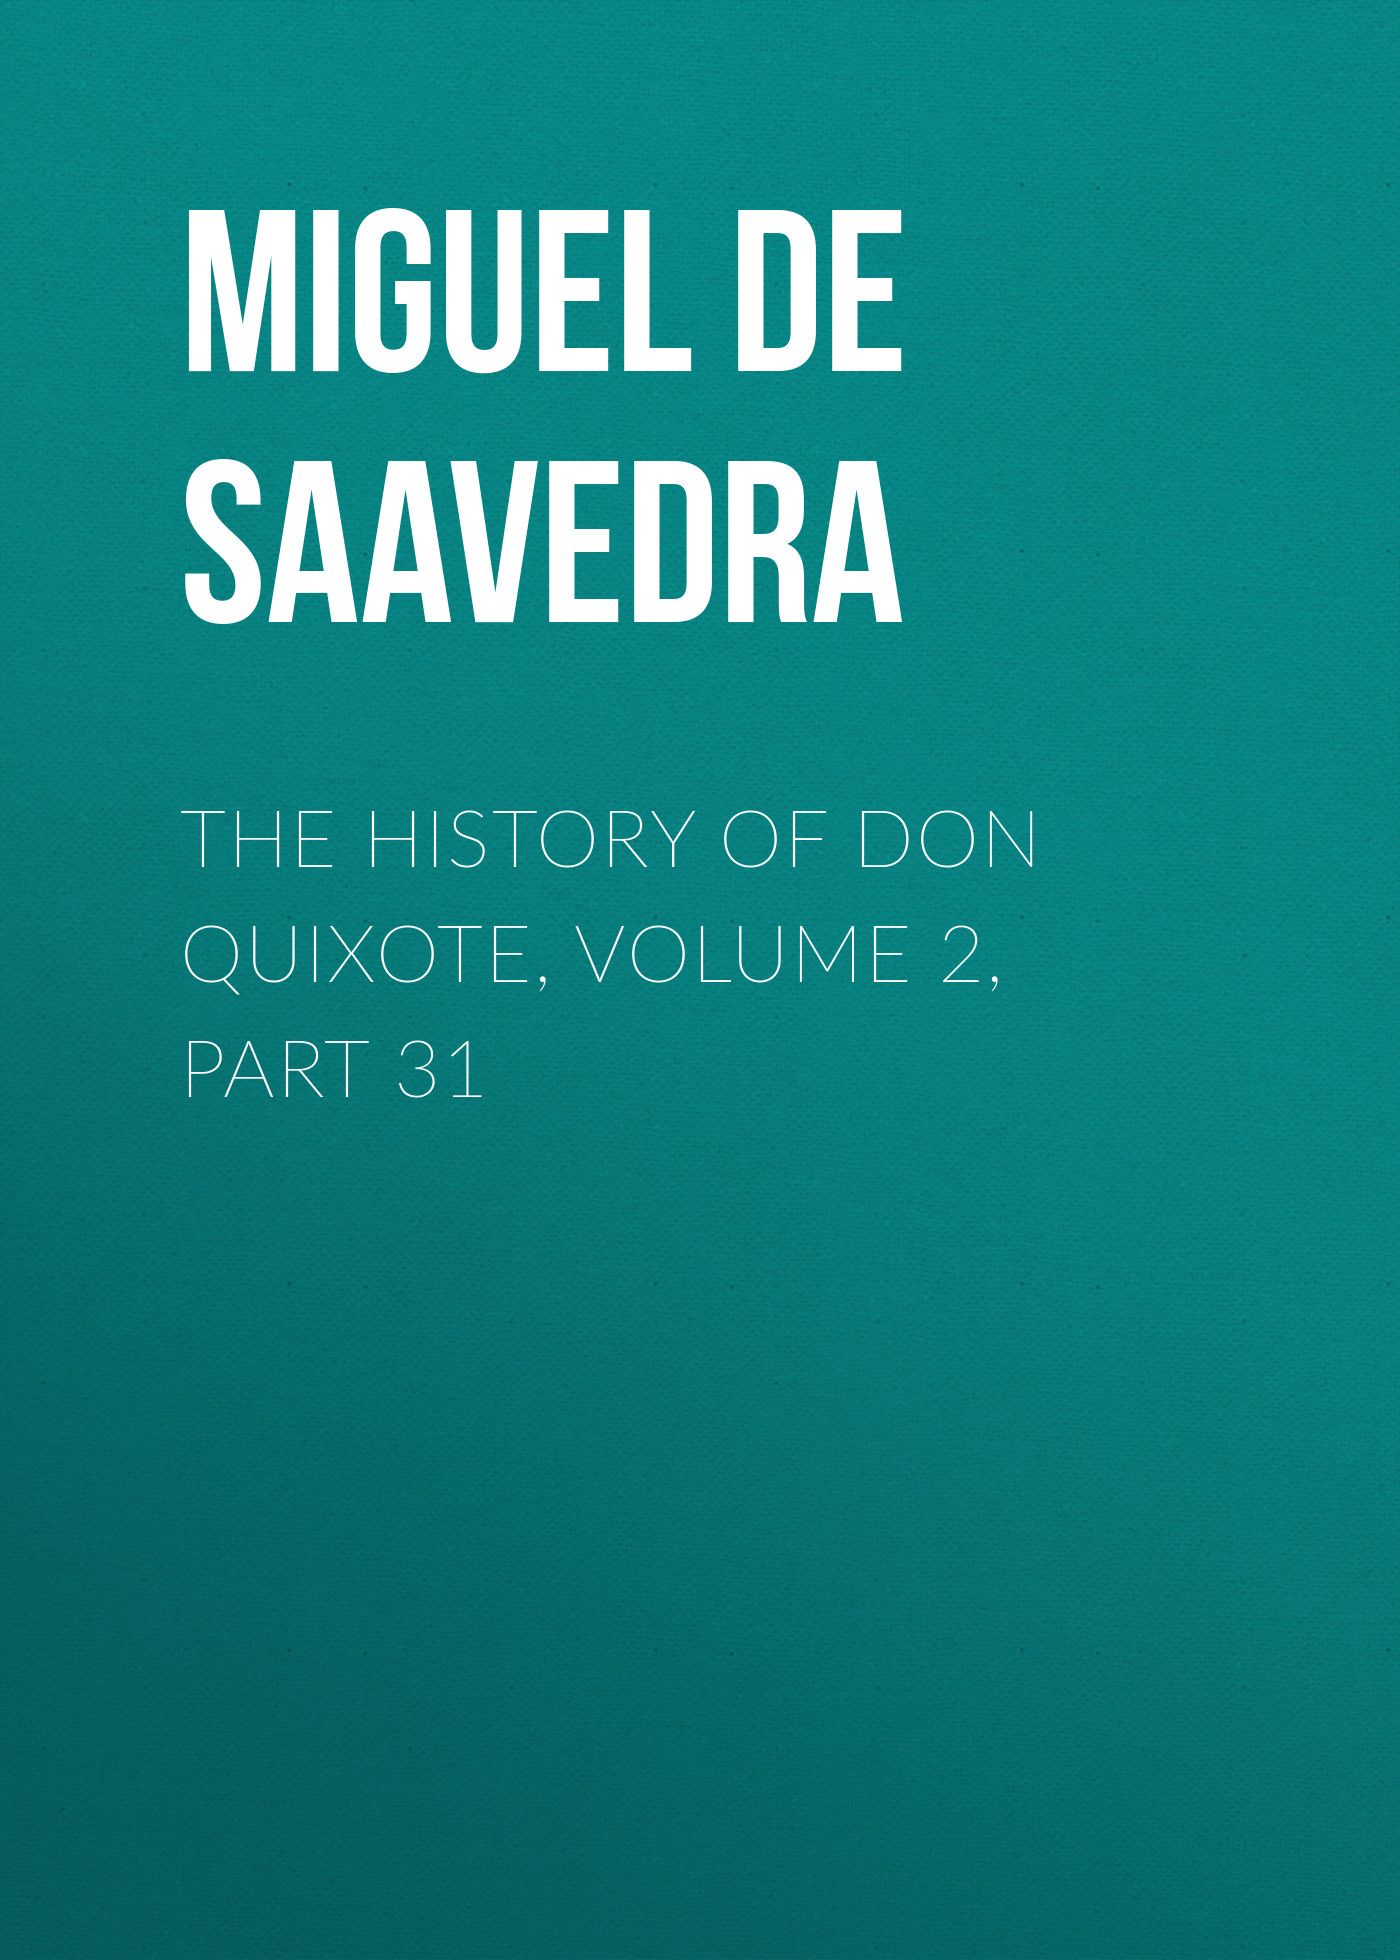 the history of don quixote volume 2 part 31